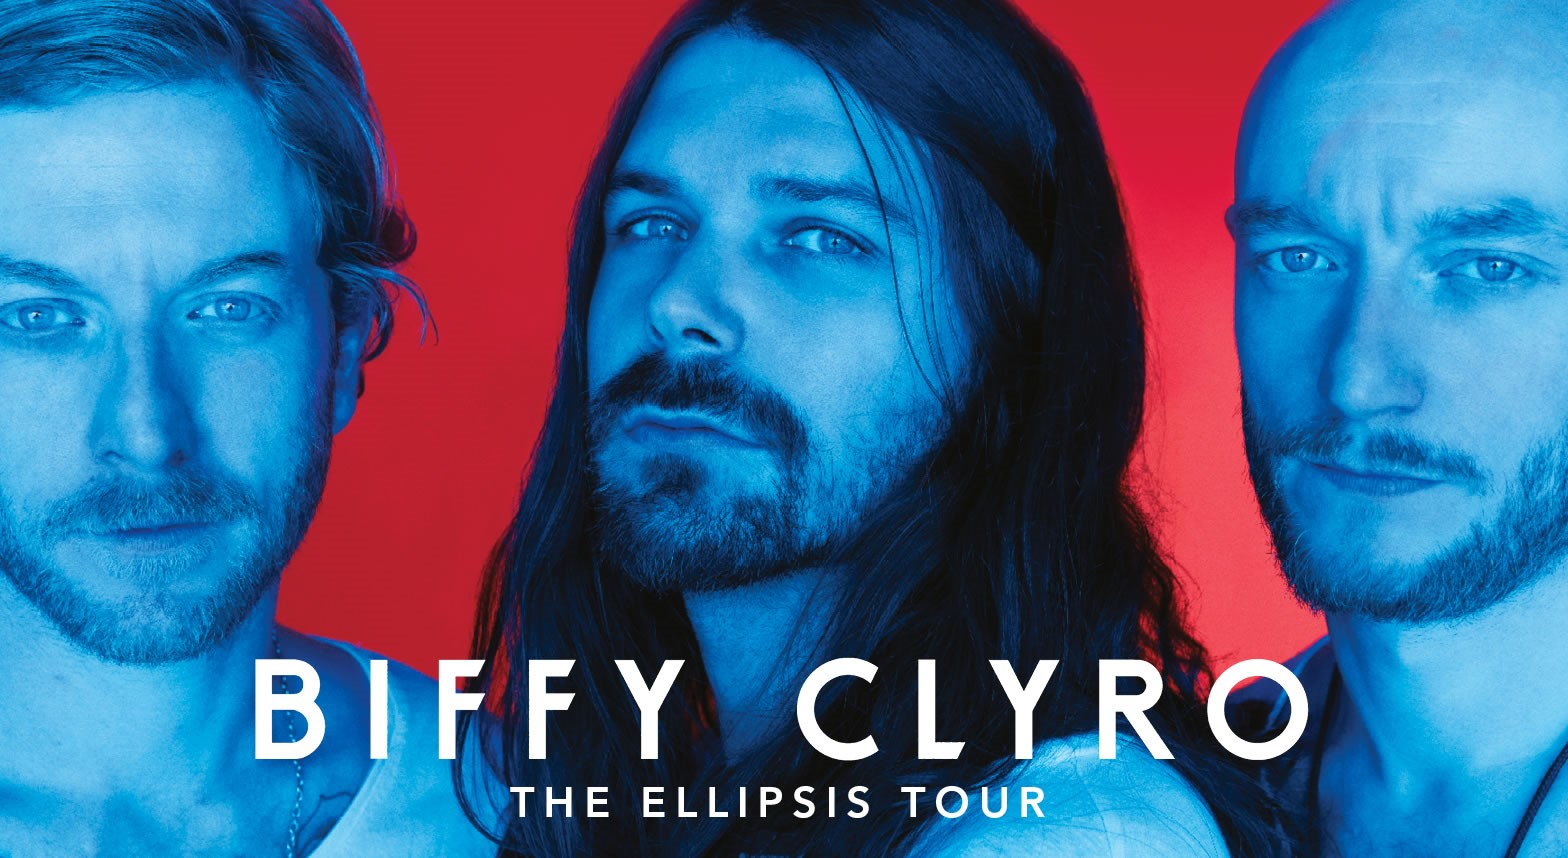 Biffy Clyro concert tickets and corporate hospitality packages